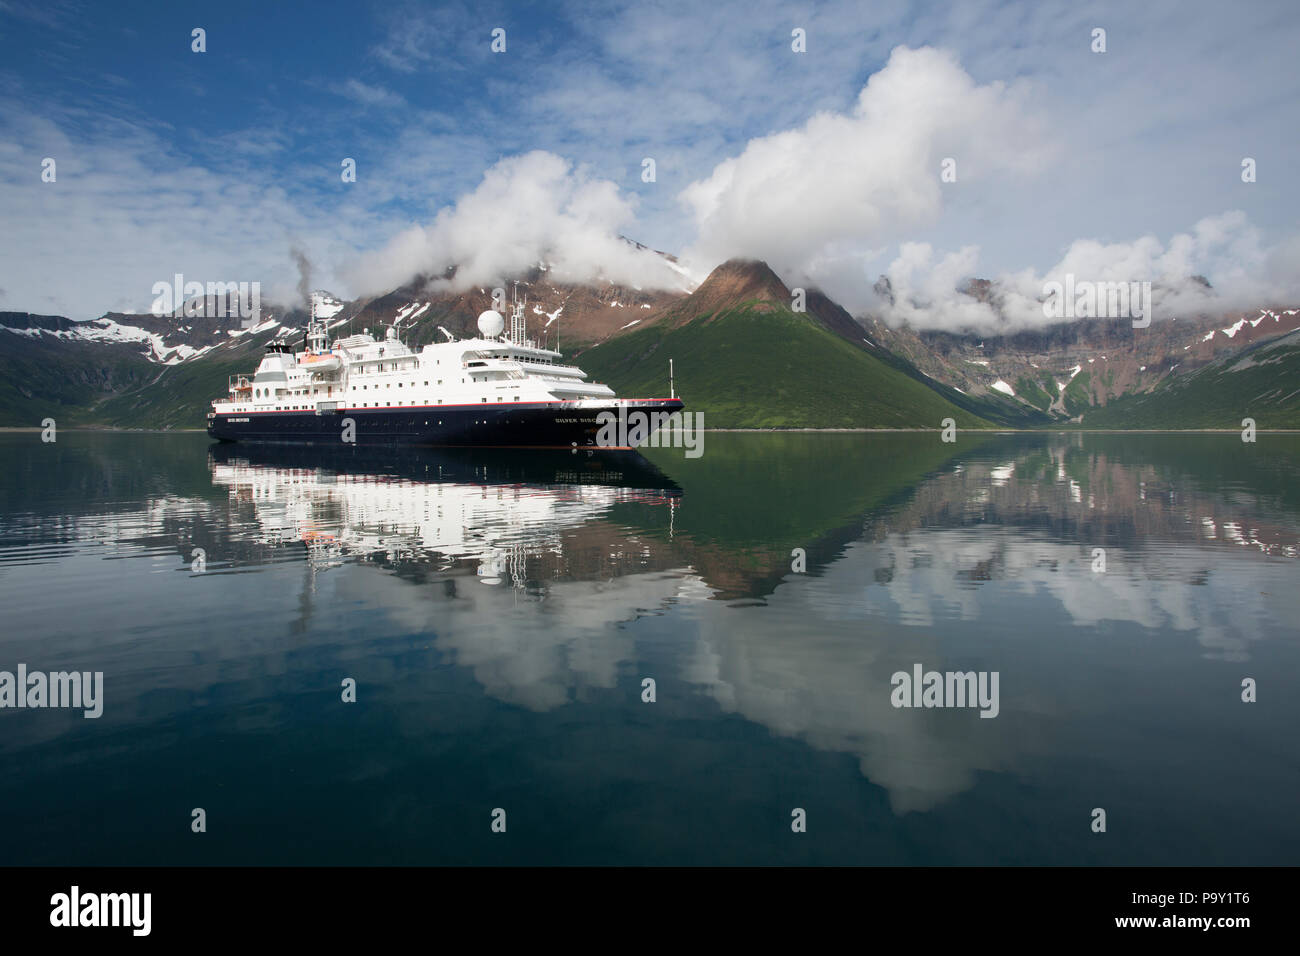 Silver Discoverer expedition ship in Castle Bay, Alaska - Stock Image